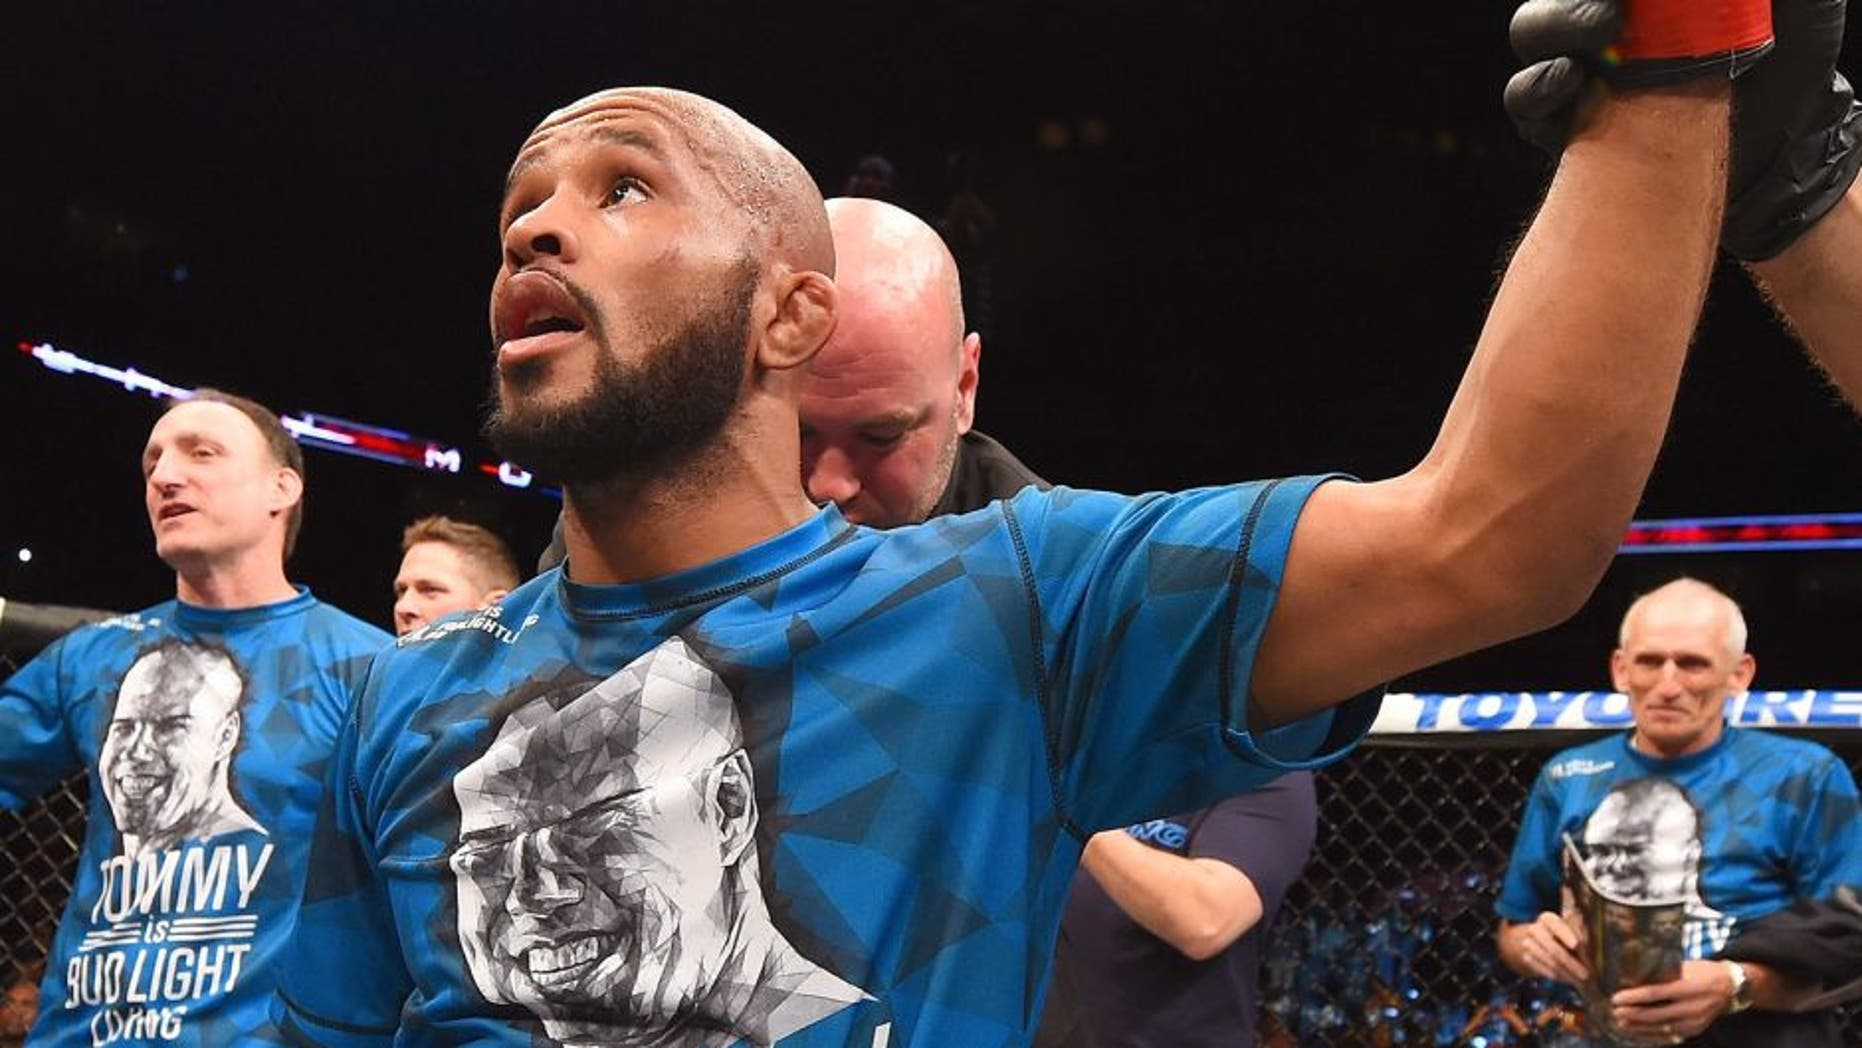 MONTREAL, QC - APRIL 25: Demetrious Johnson of the United States reacts after his submission victory over Kyoji Horiguchi of Japan in their UFC flyweight championship bout during the UFC 186 event at the Bell Centre on April 25, 2015 in Montreal, Quebec, Canada. (Photo by Josh Hedges/Zuffa LLC/Zuffa LLC via Getty Images)